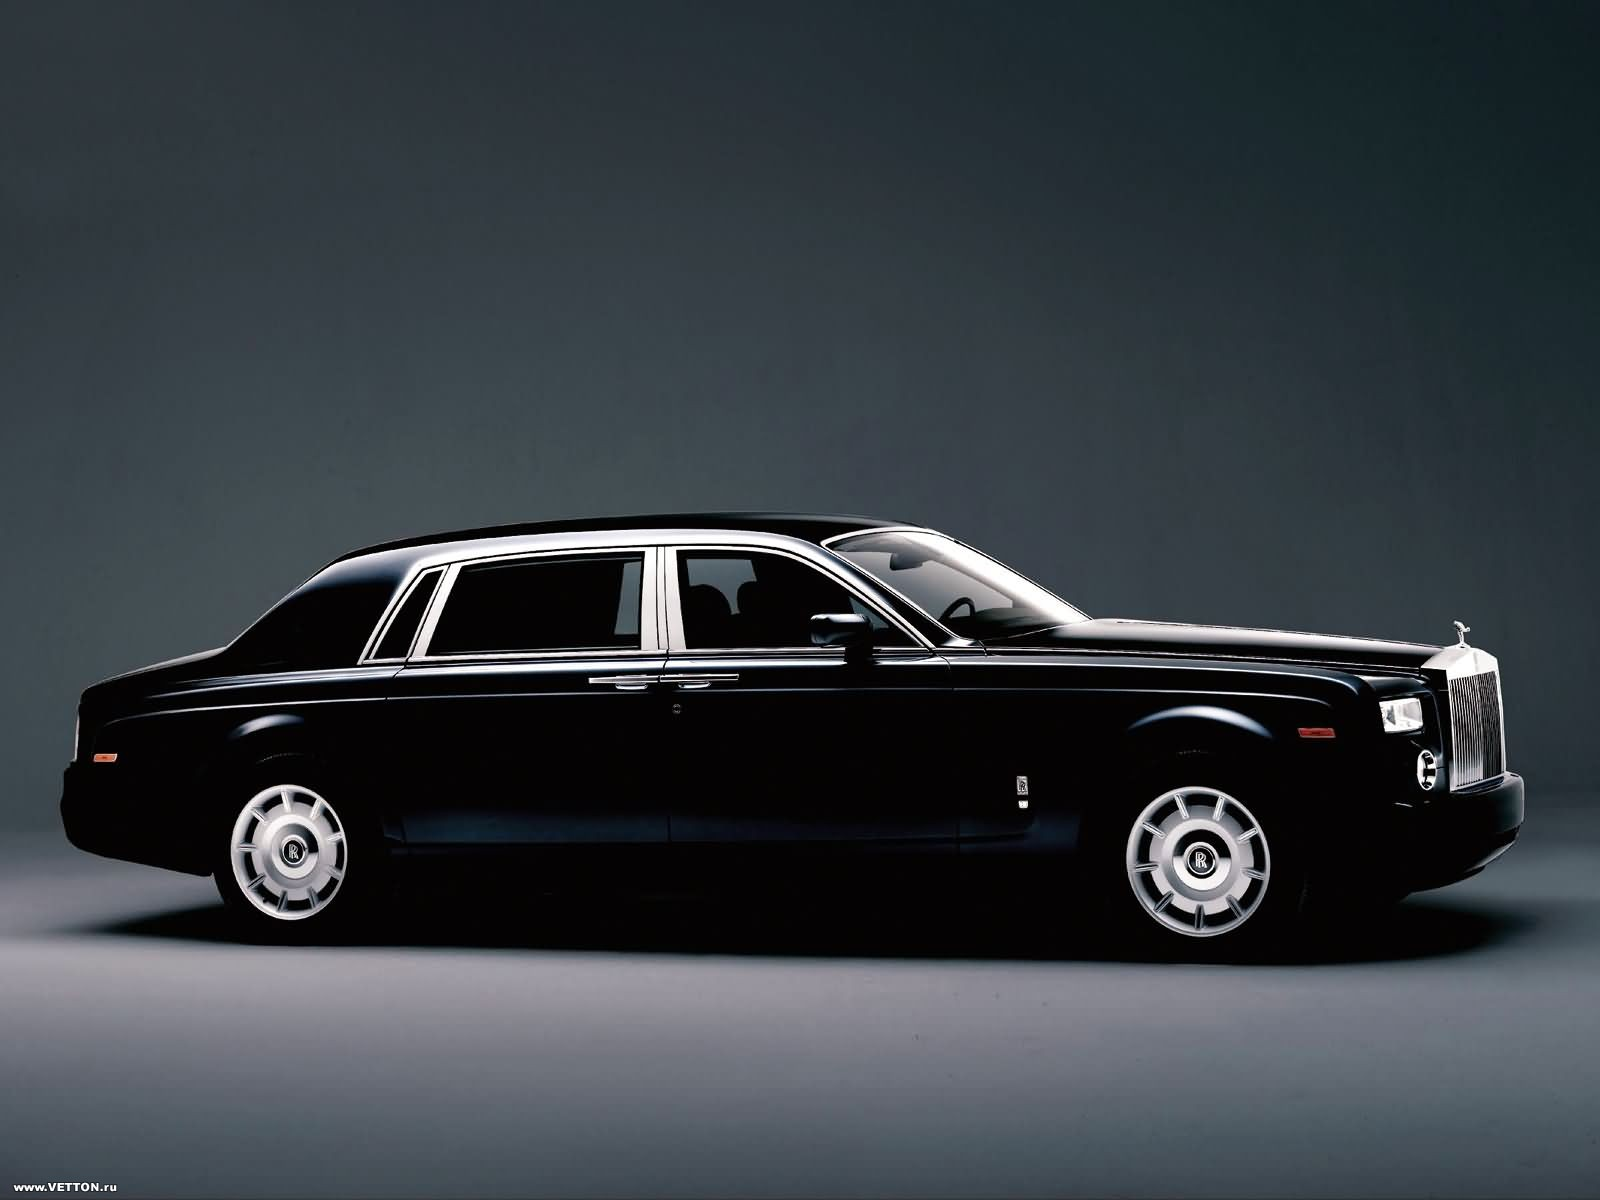 wallpapershdsize royal royals car wallpapers latest 2011 hd wallpapers. Black Bedroom Furniture Sets. Home Design Ideas